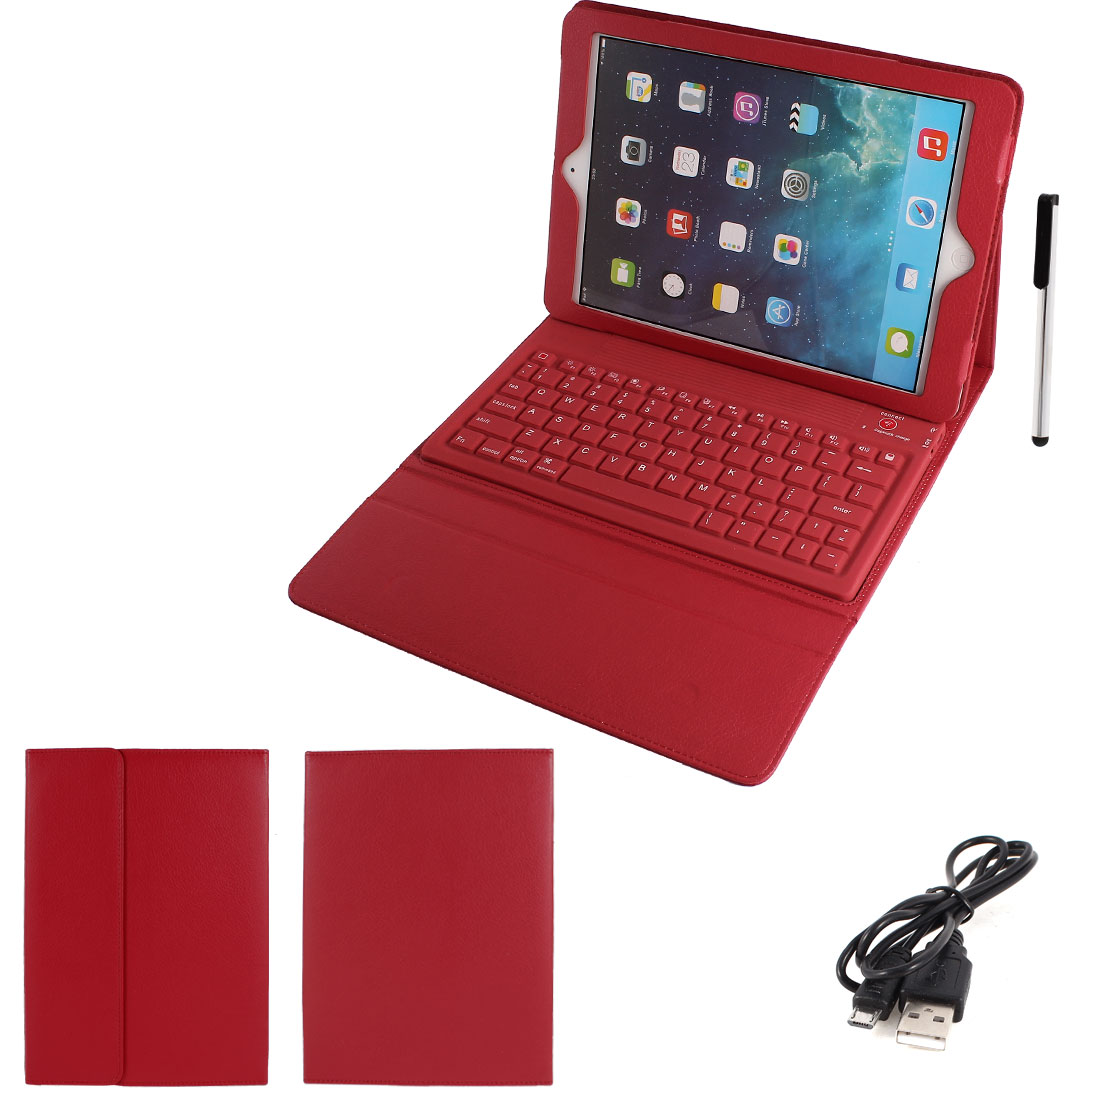 Unique Bargains Red PU Leather bluetooth Wireless Keyboar...